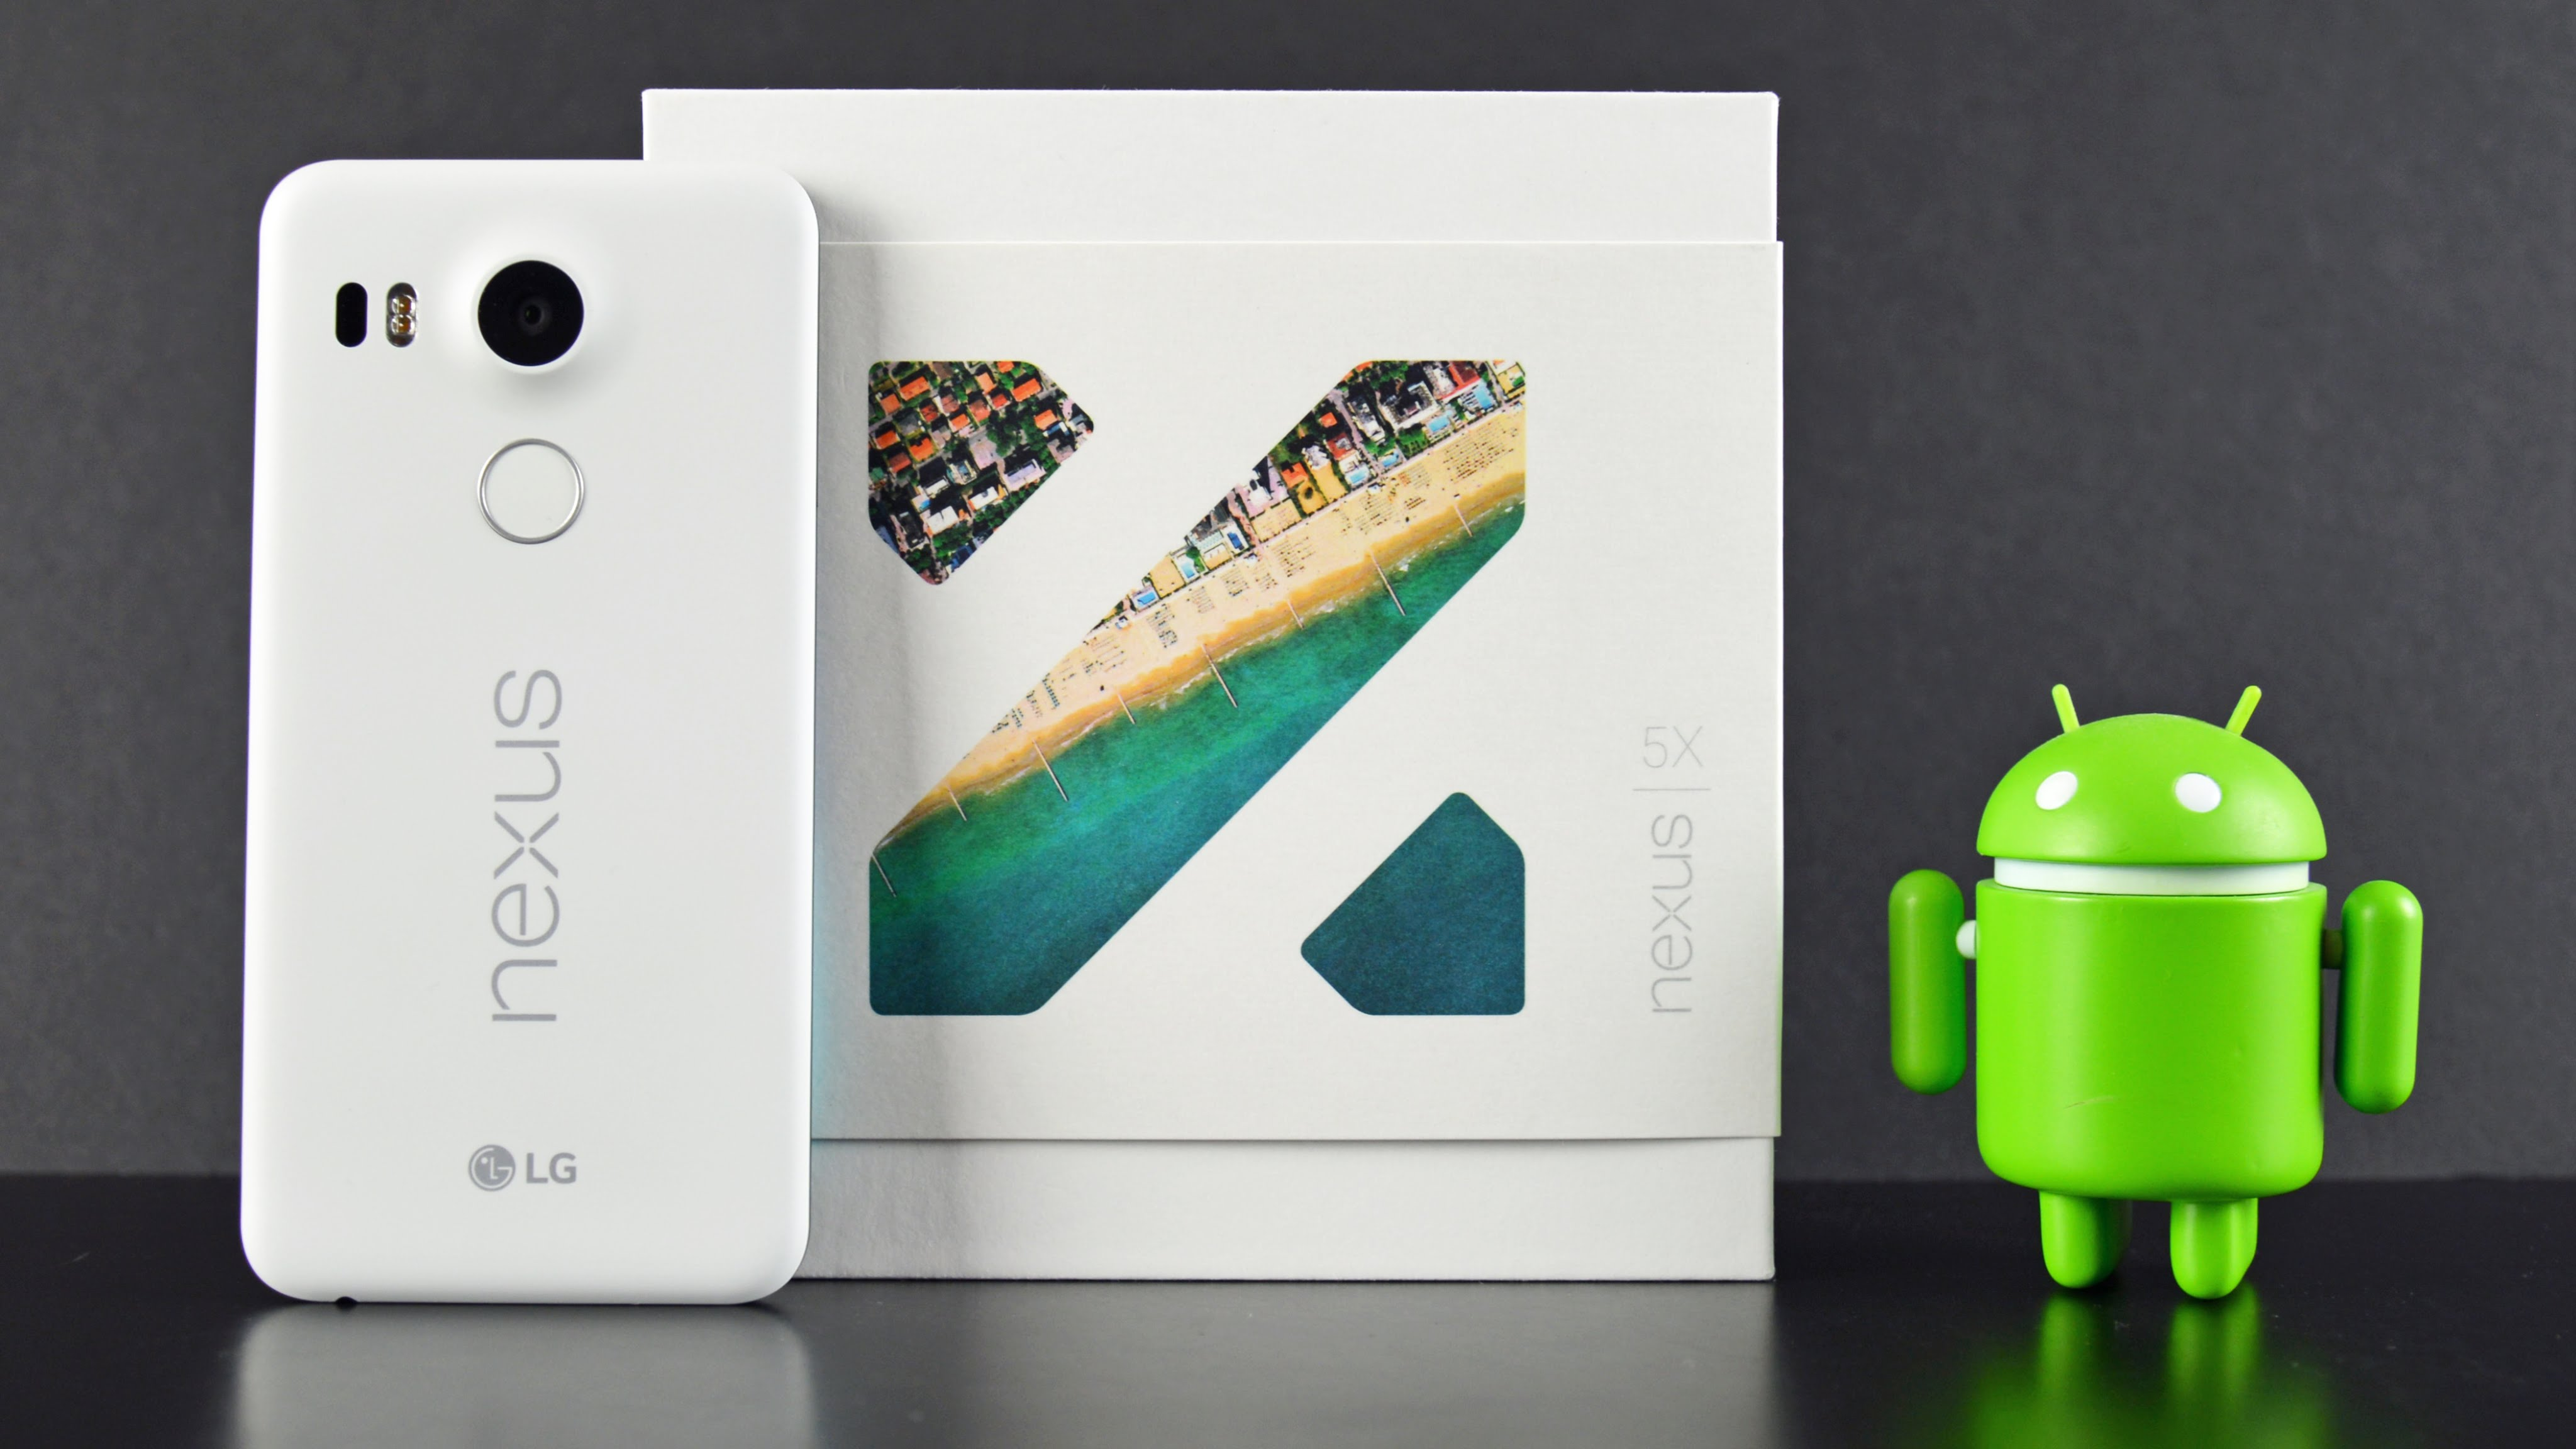 Unboxing Google Nexus 5X